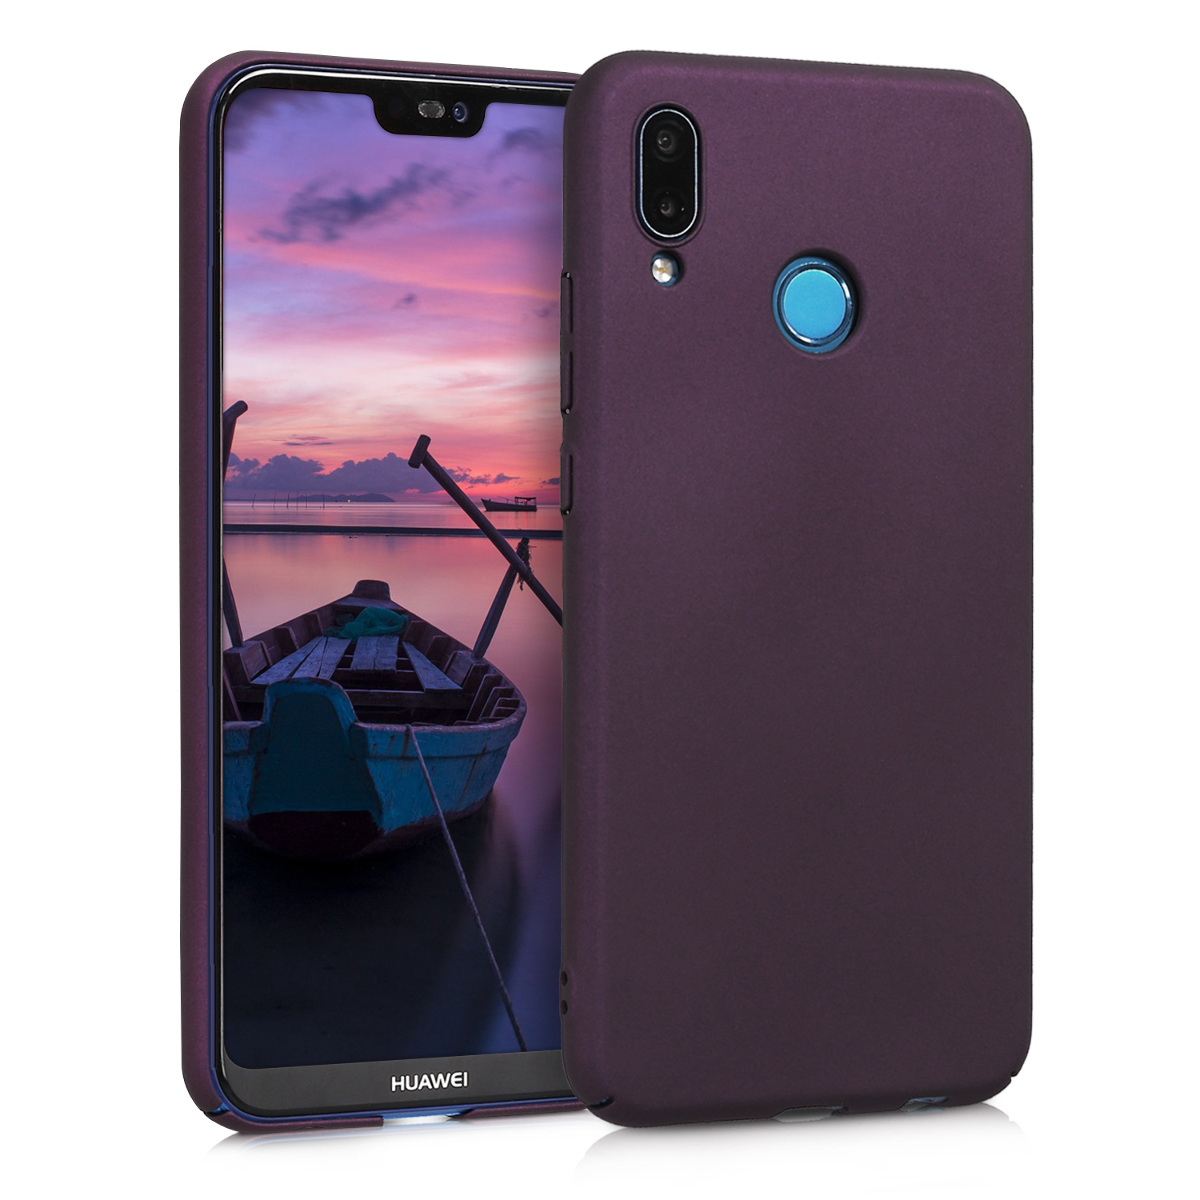 KW Slim Anti-Slip Cover - Σκληρή Θήκη Καουτσούκ Huawei P20 Lite - Metallic Berry (45408.115)